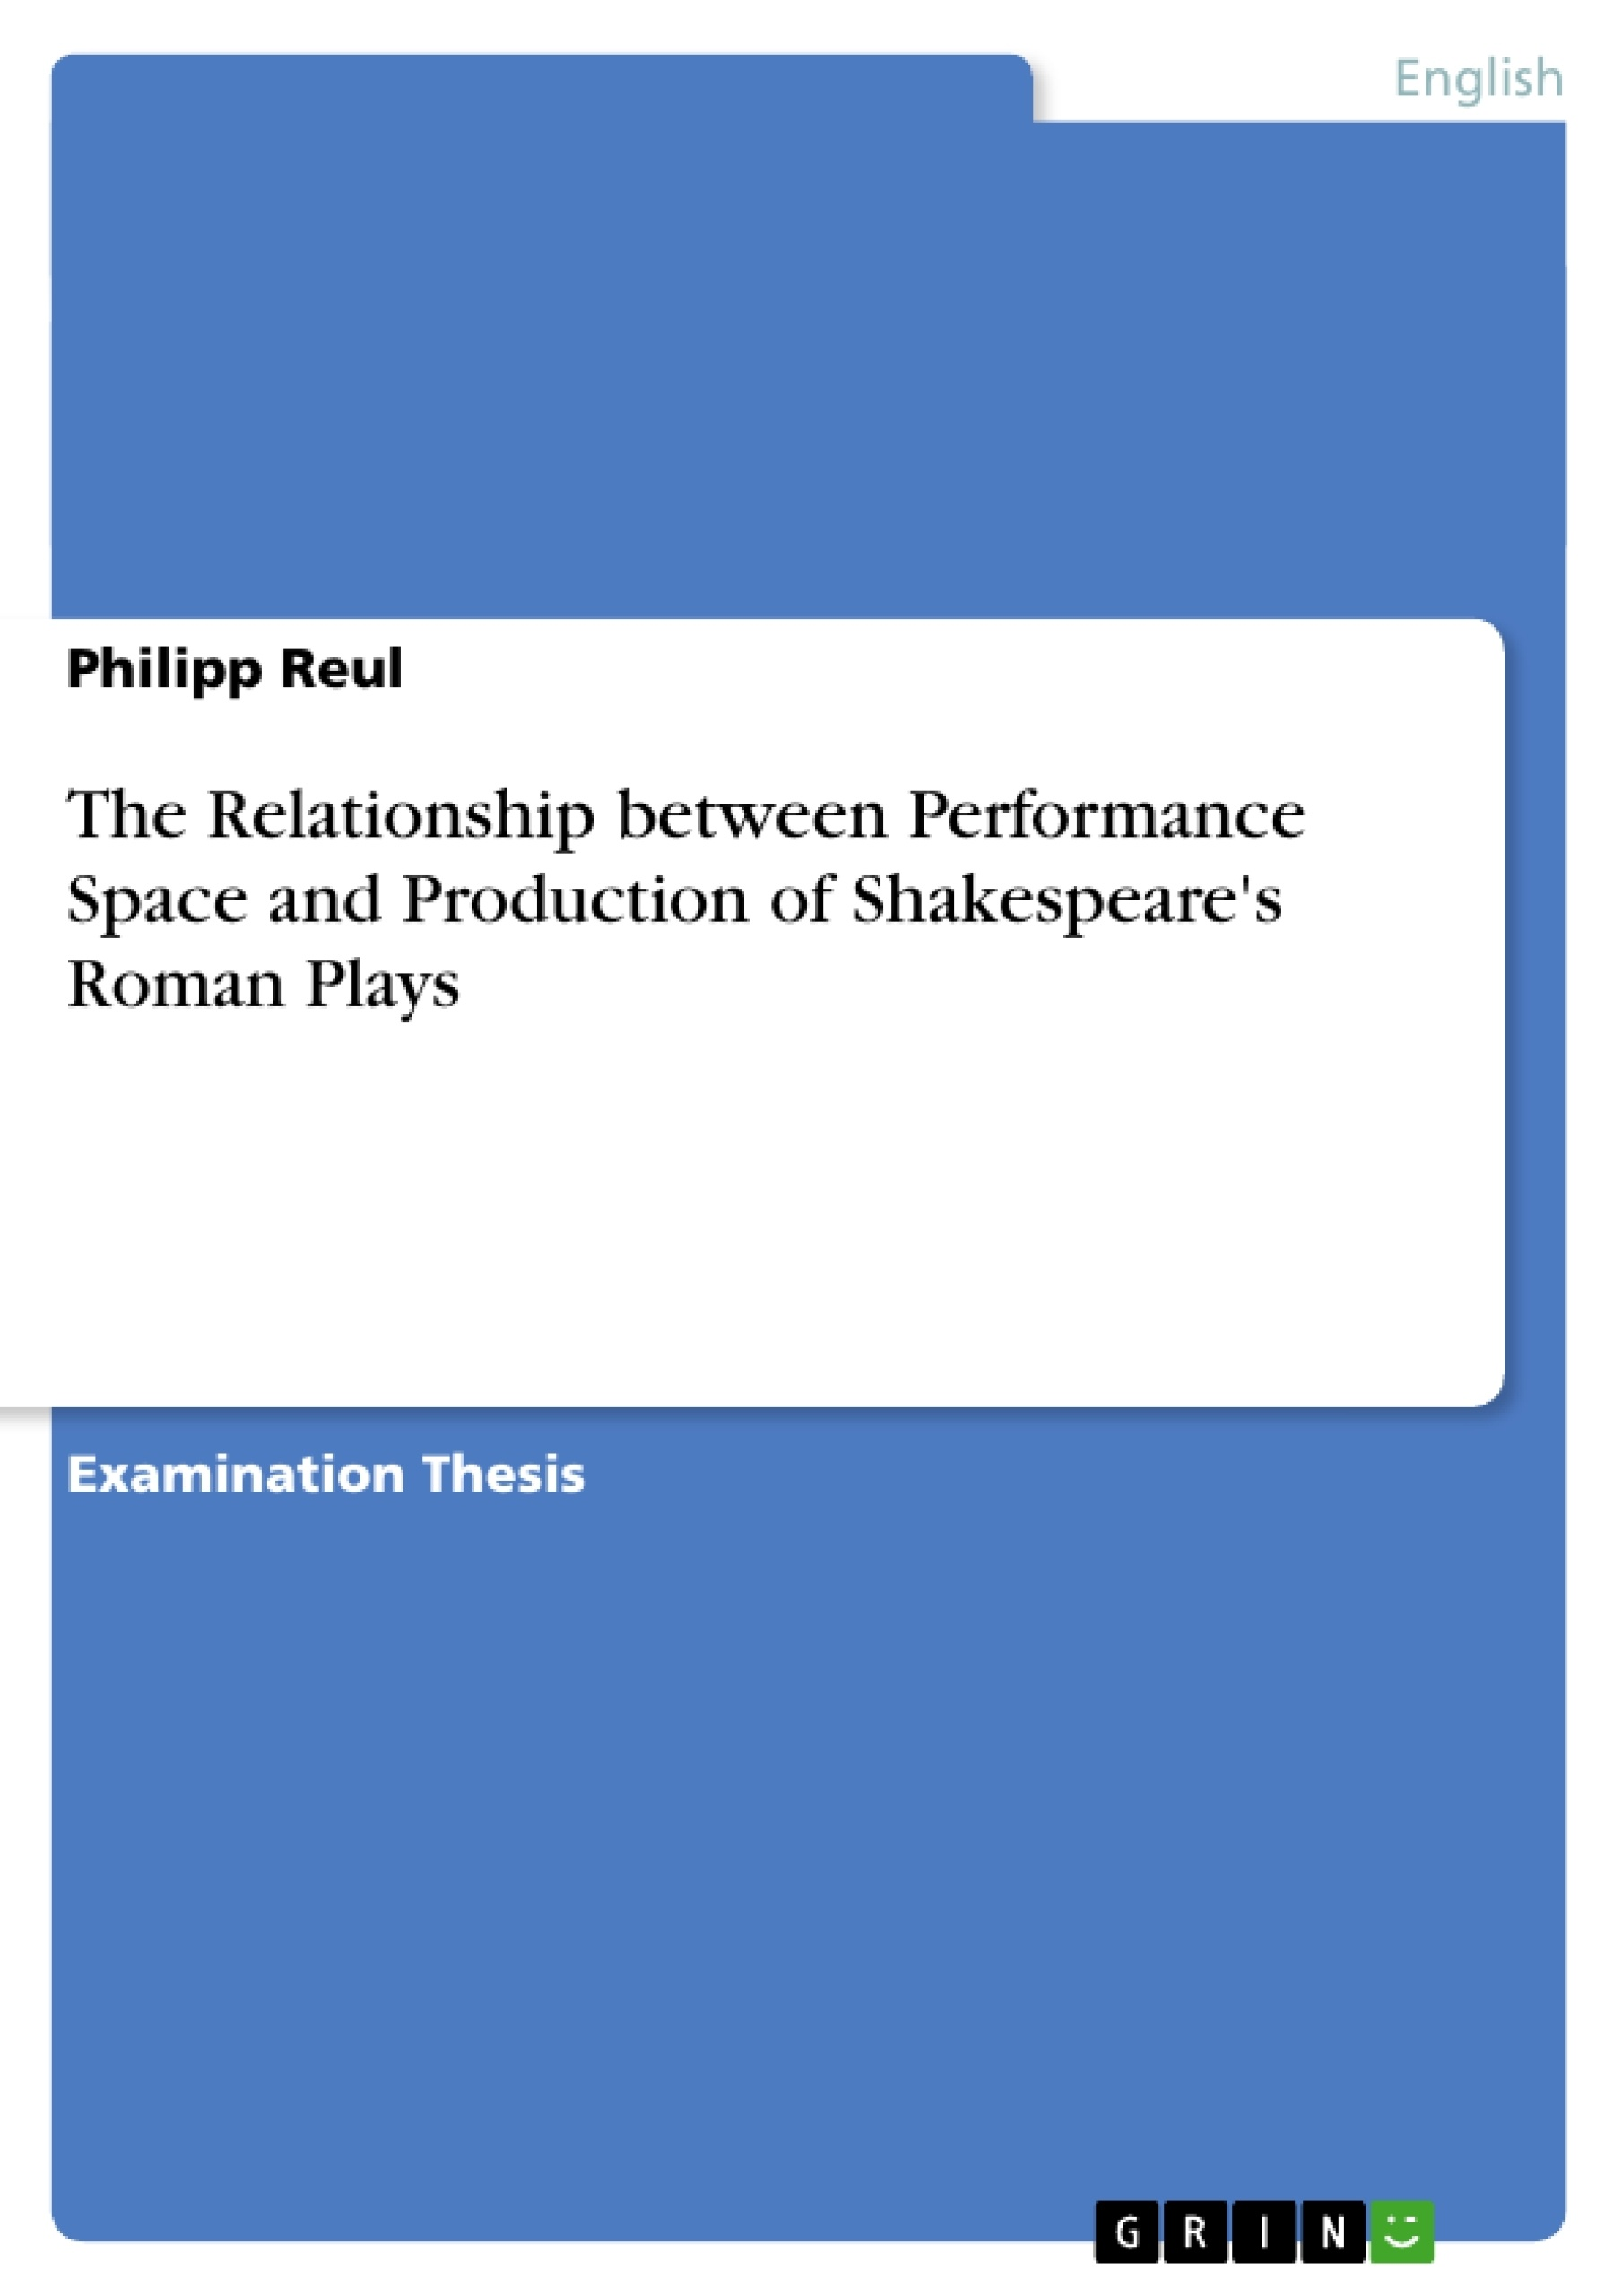 Title: The Relationship between Performance Space and Production of Shakespeare's Roman Plays